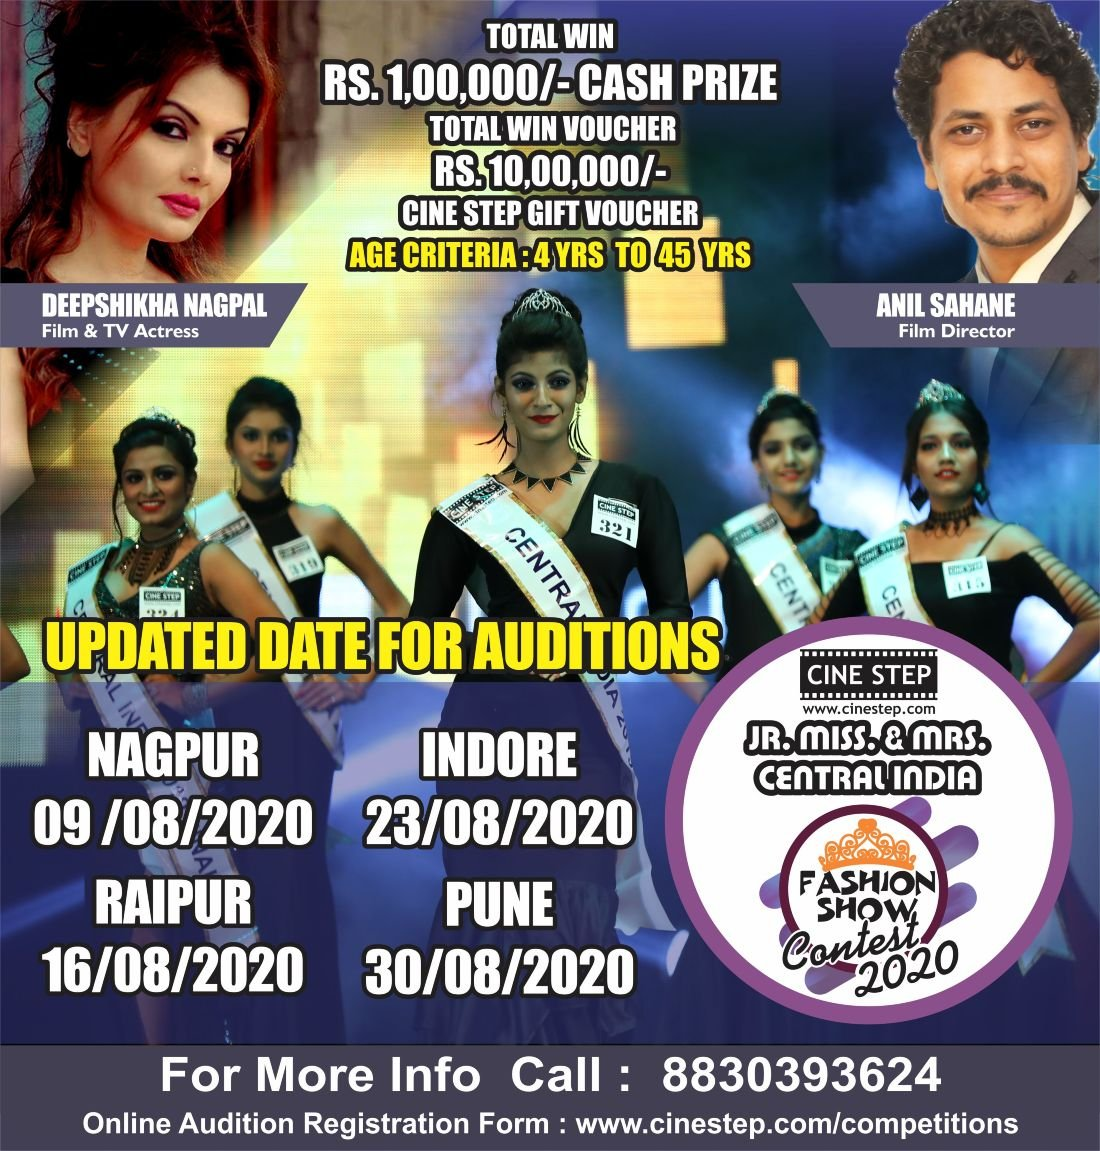 CINE STEP Jr. Miss & Mrs Central India Fashion Show Contest 20